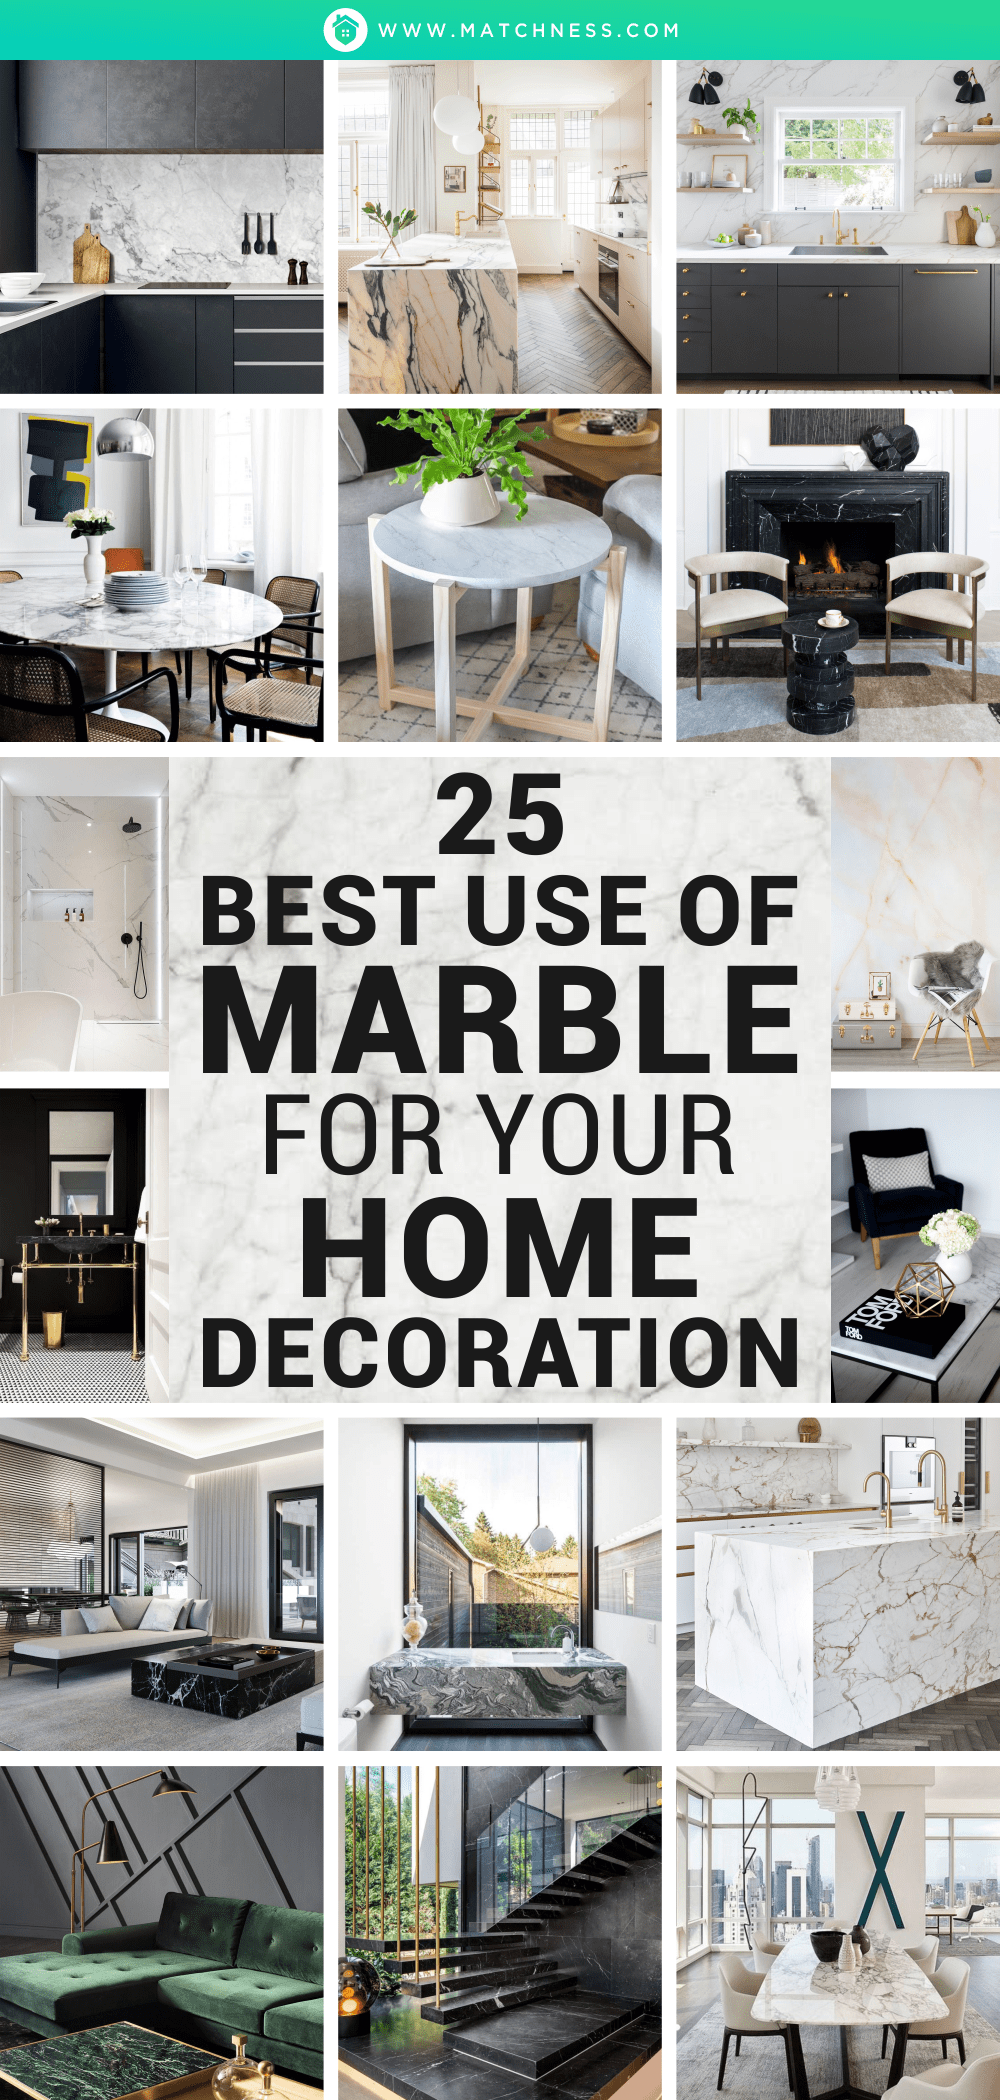 25-best-use-of-marble-for-your-home-decoration1-1